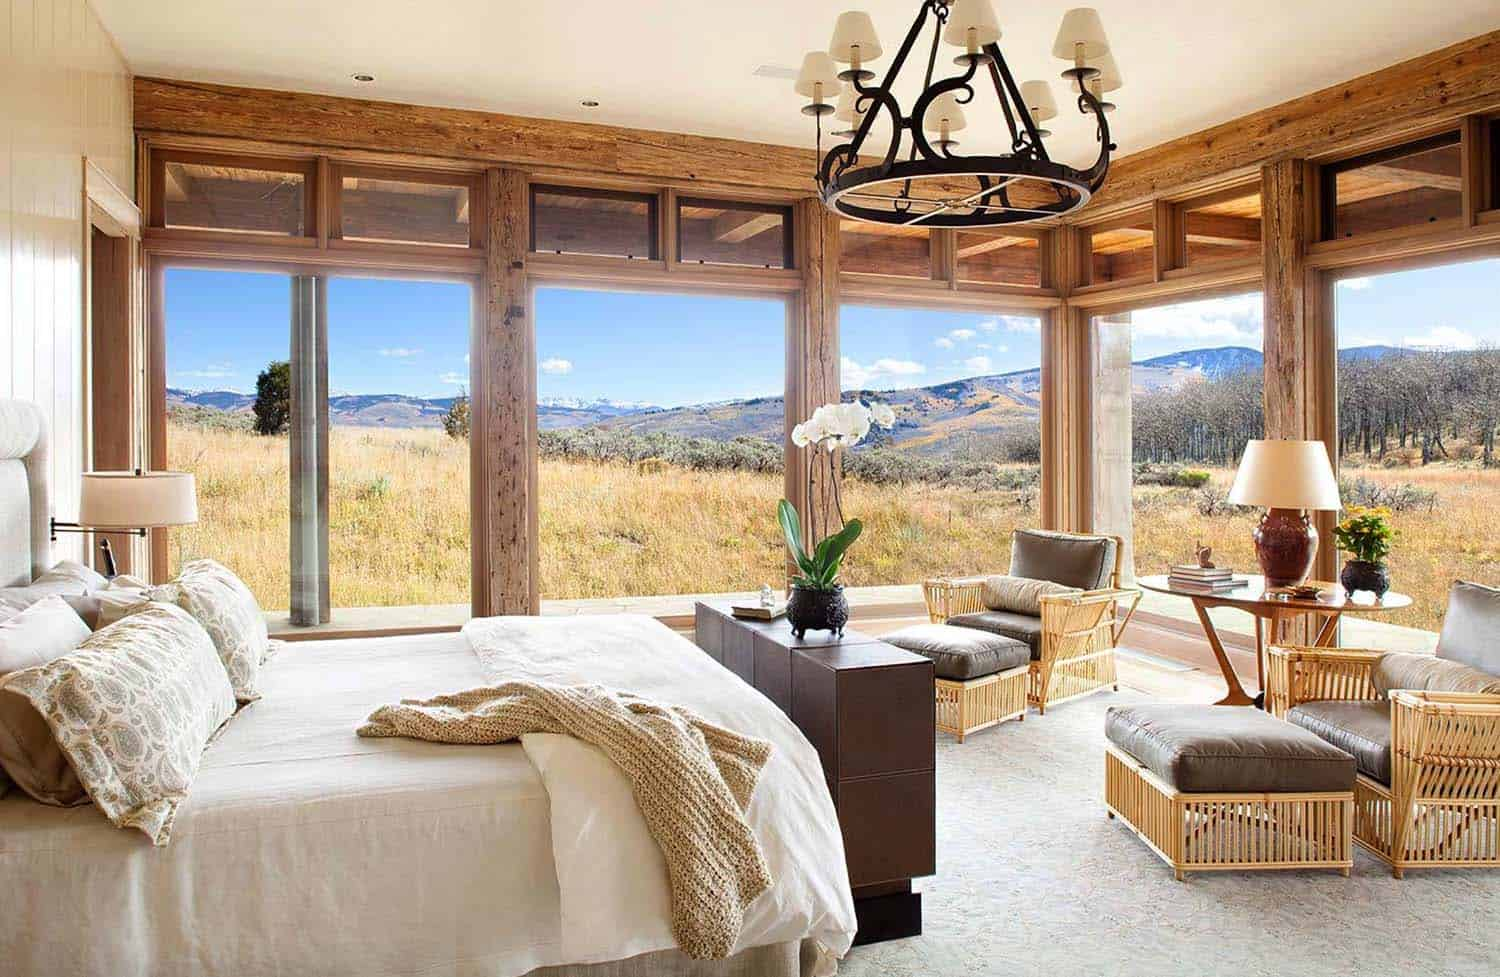 Amazing Cozy-Rustic Bedrooms-33-1 Kindesign